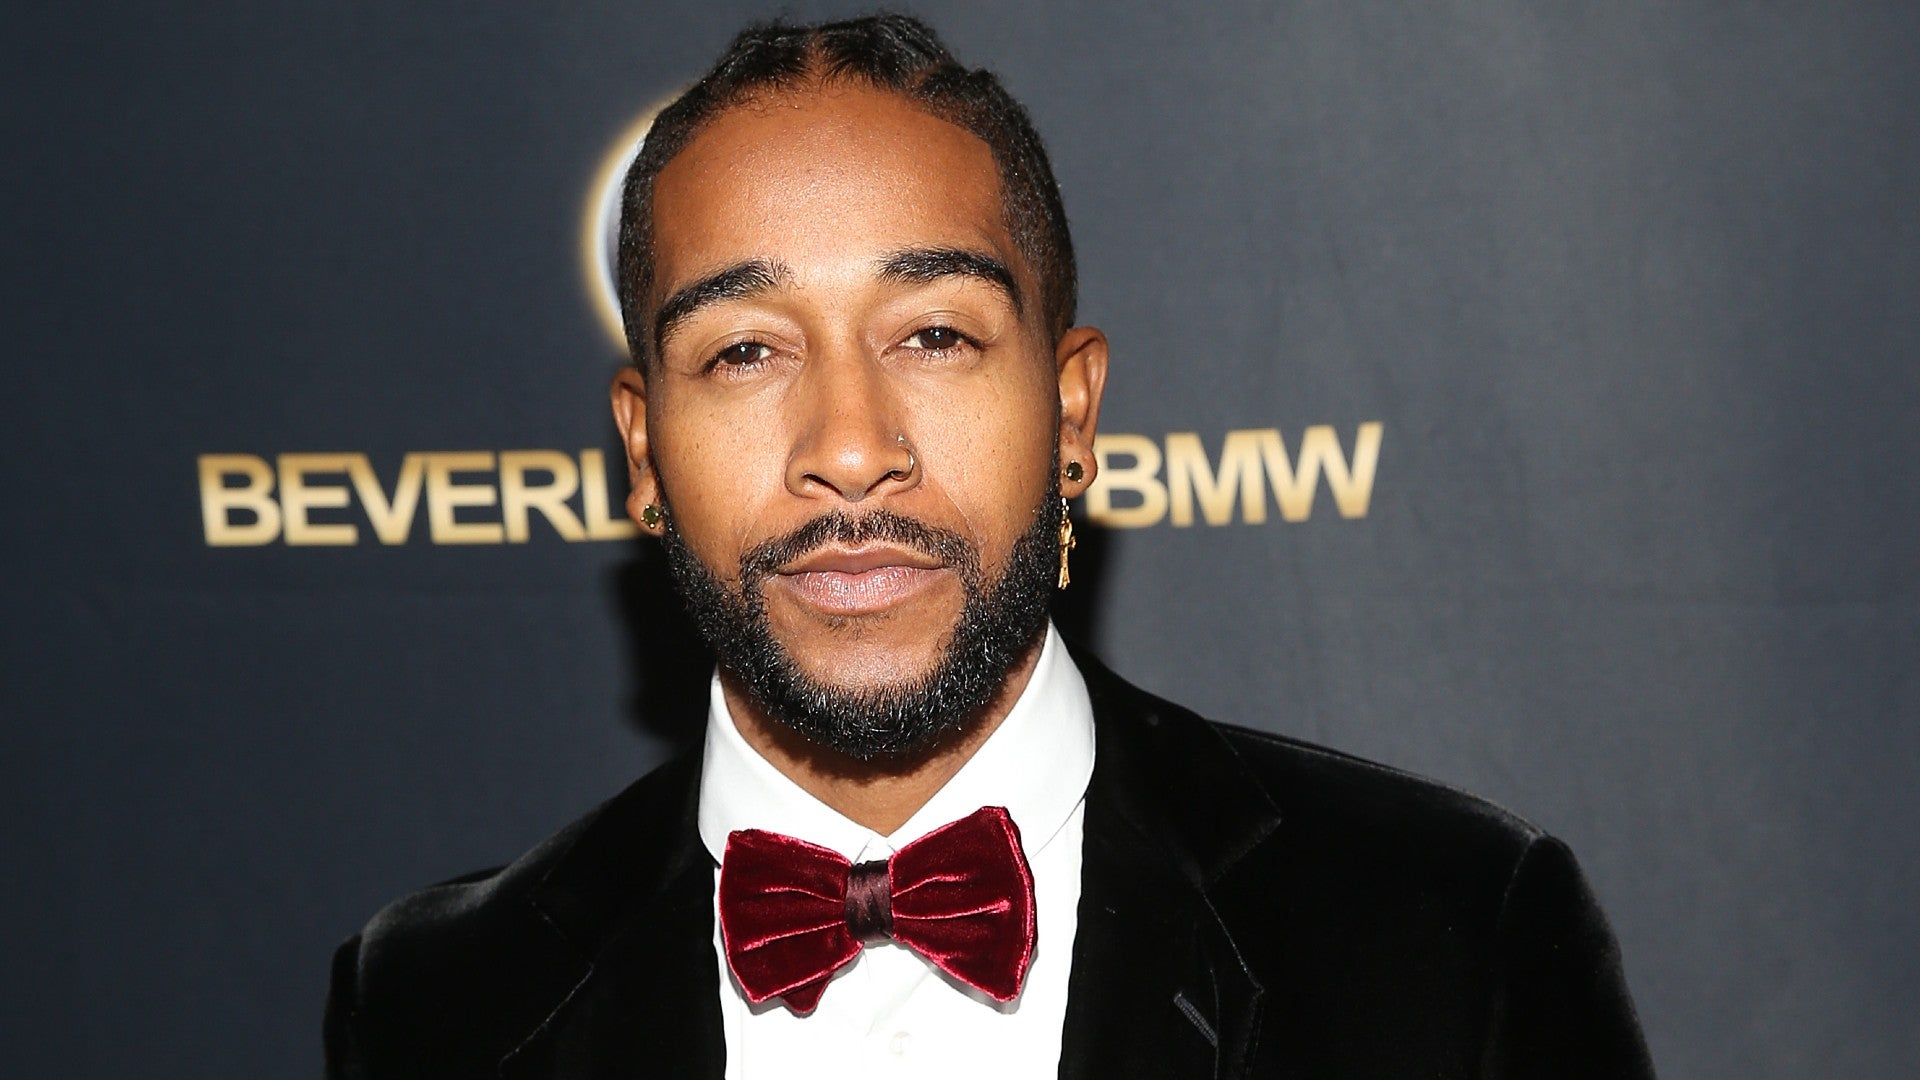 Omarion Uses This Affordable Product To Keep His Skin Glowing